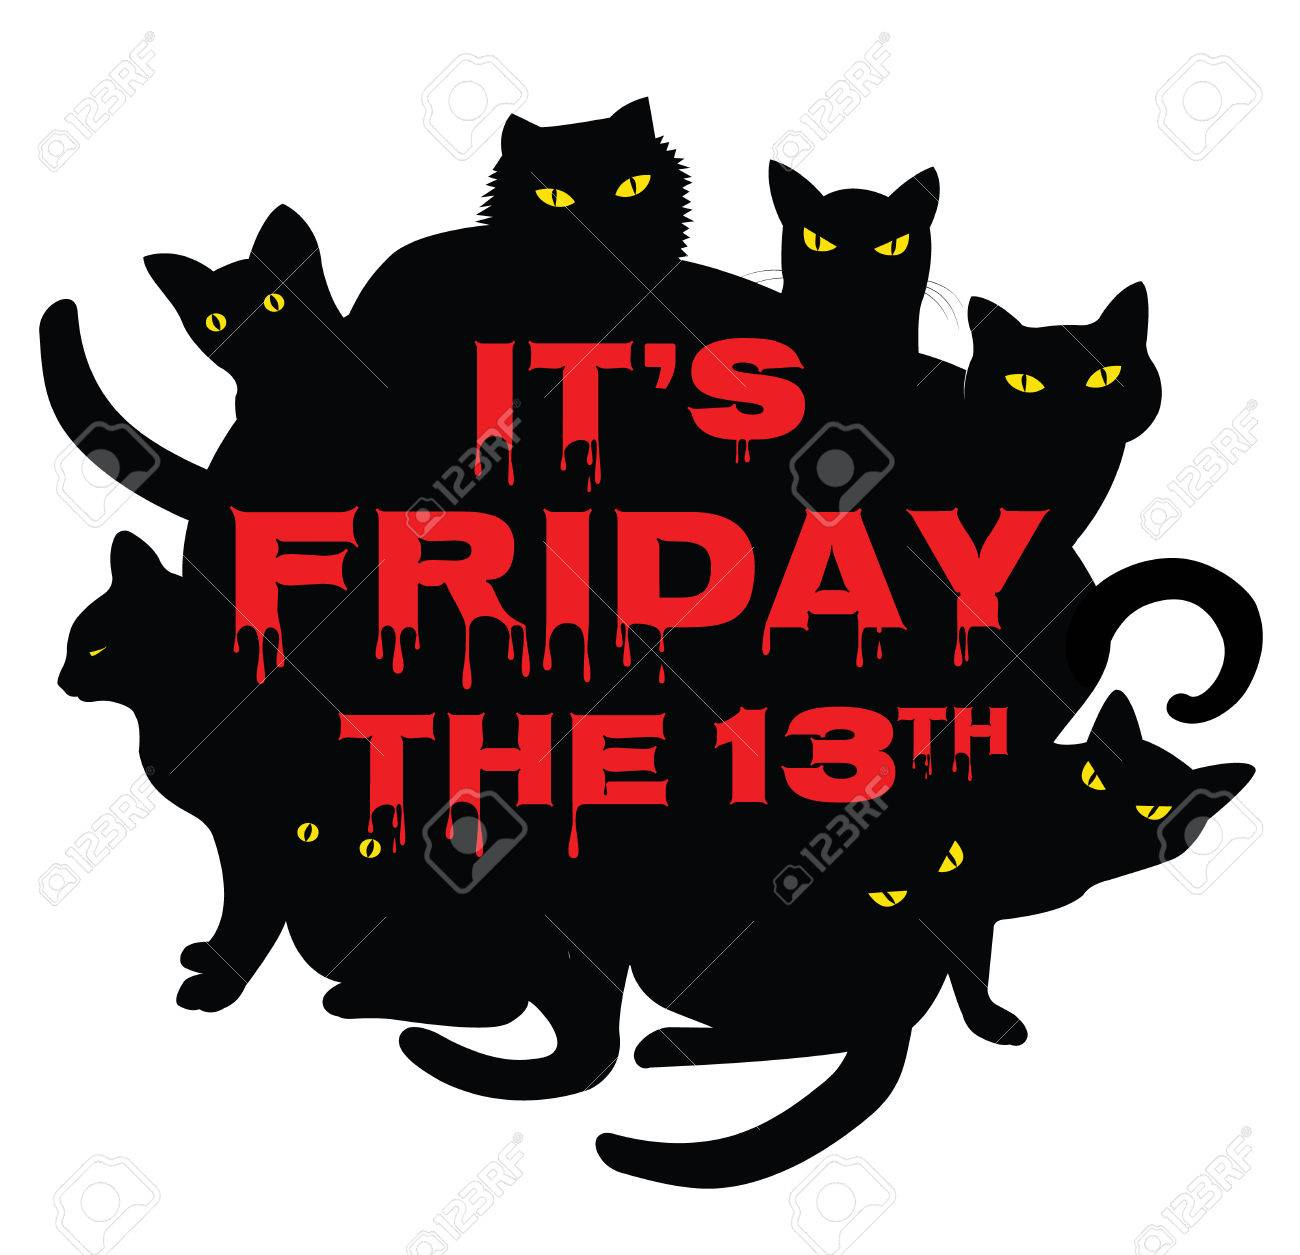 Card for Friday 13 with black cats.